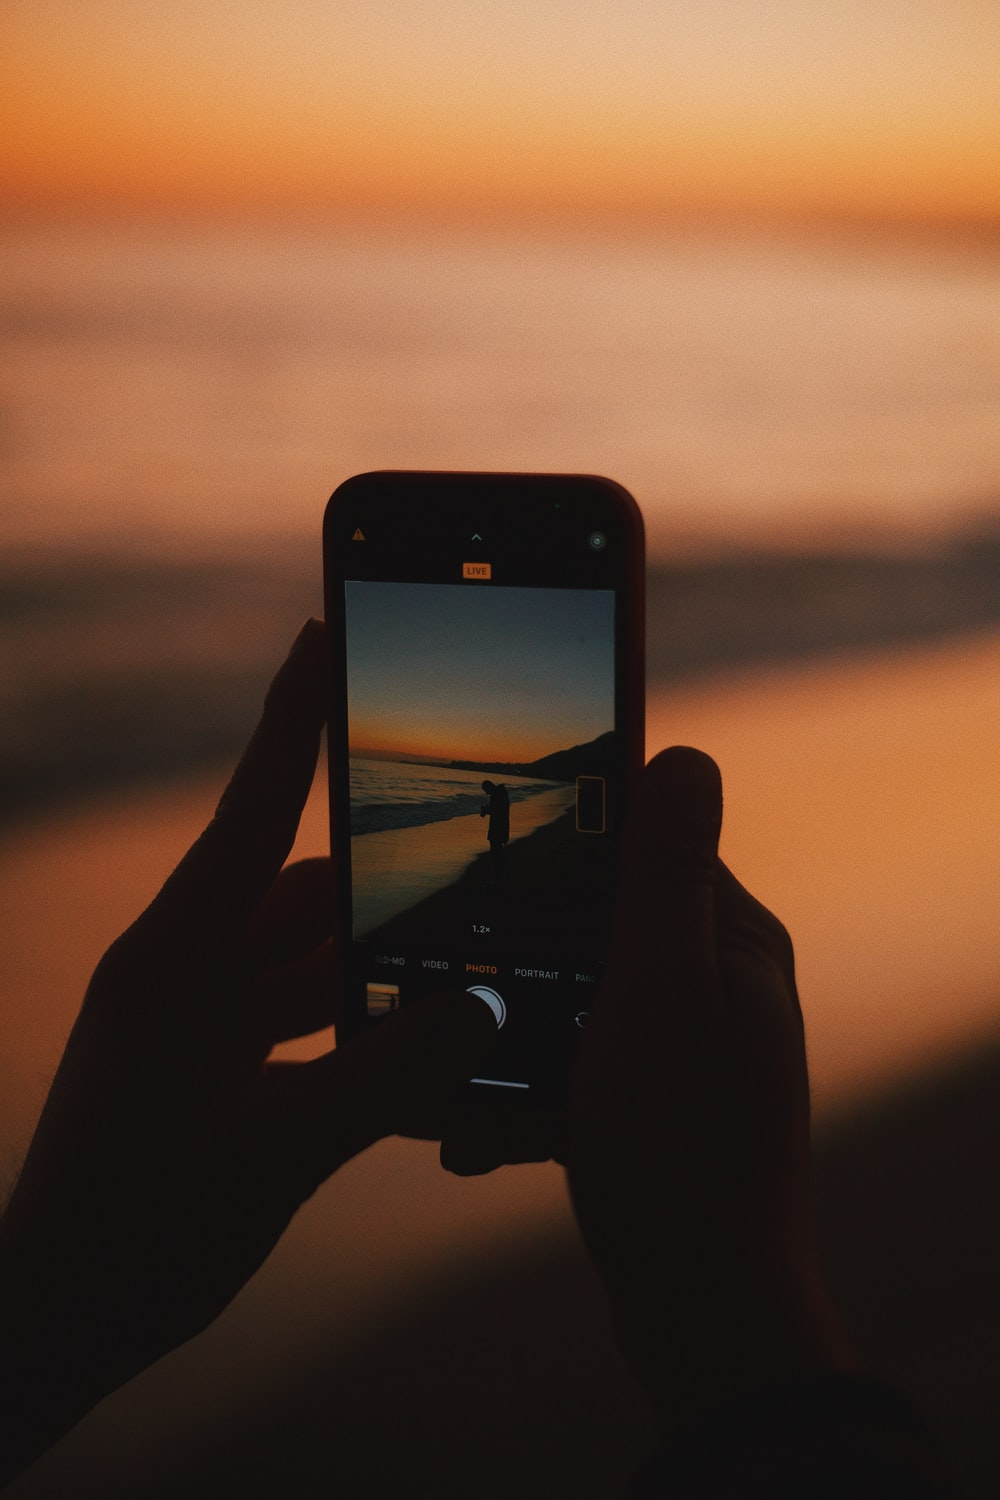 person holding iphone taking photo of sunset